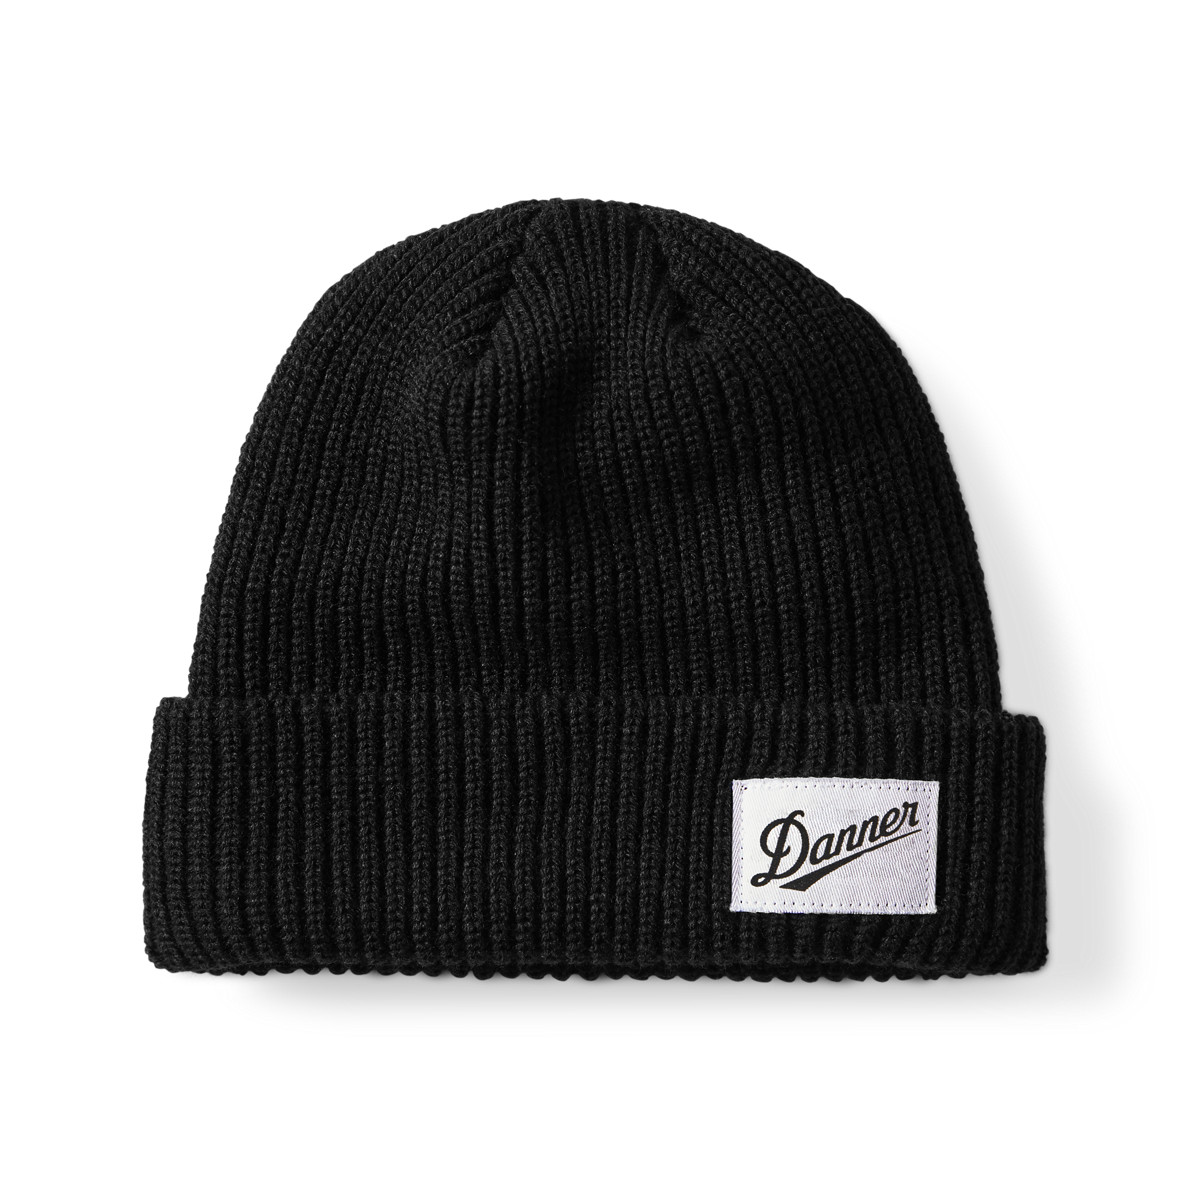 Danner Ribbed Beanie - Black